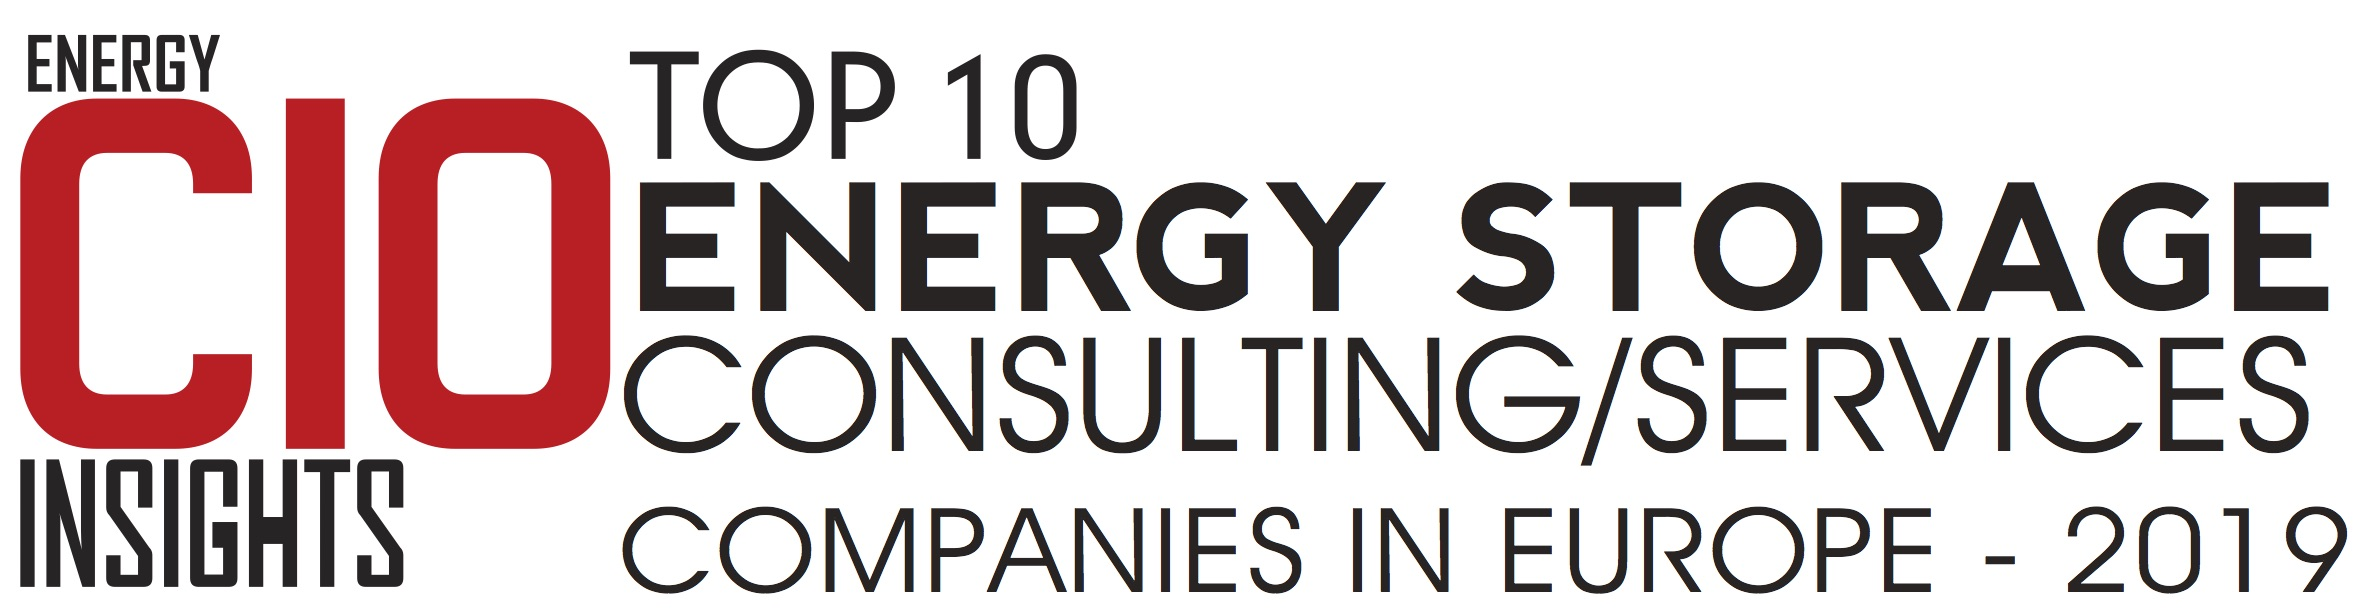 PESC-CH Daniel Siemaszko top 10 energy storage consulting services companies in europe 2019